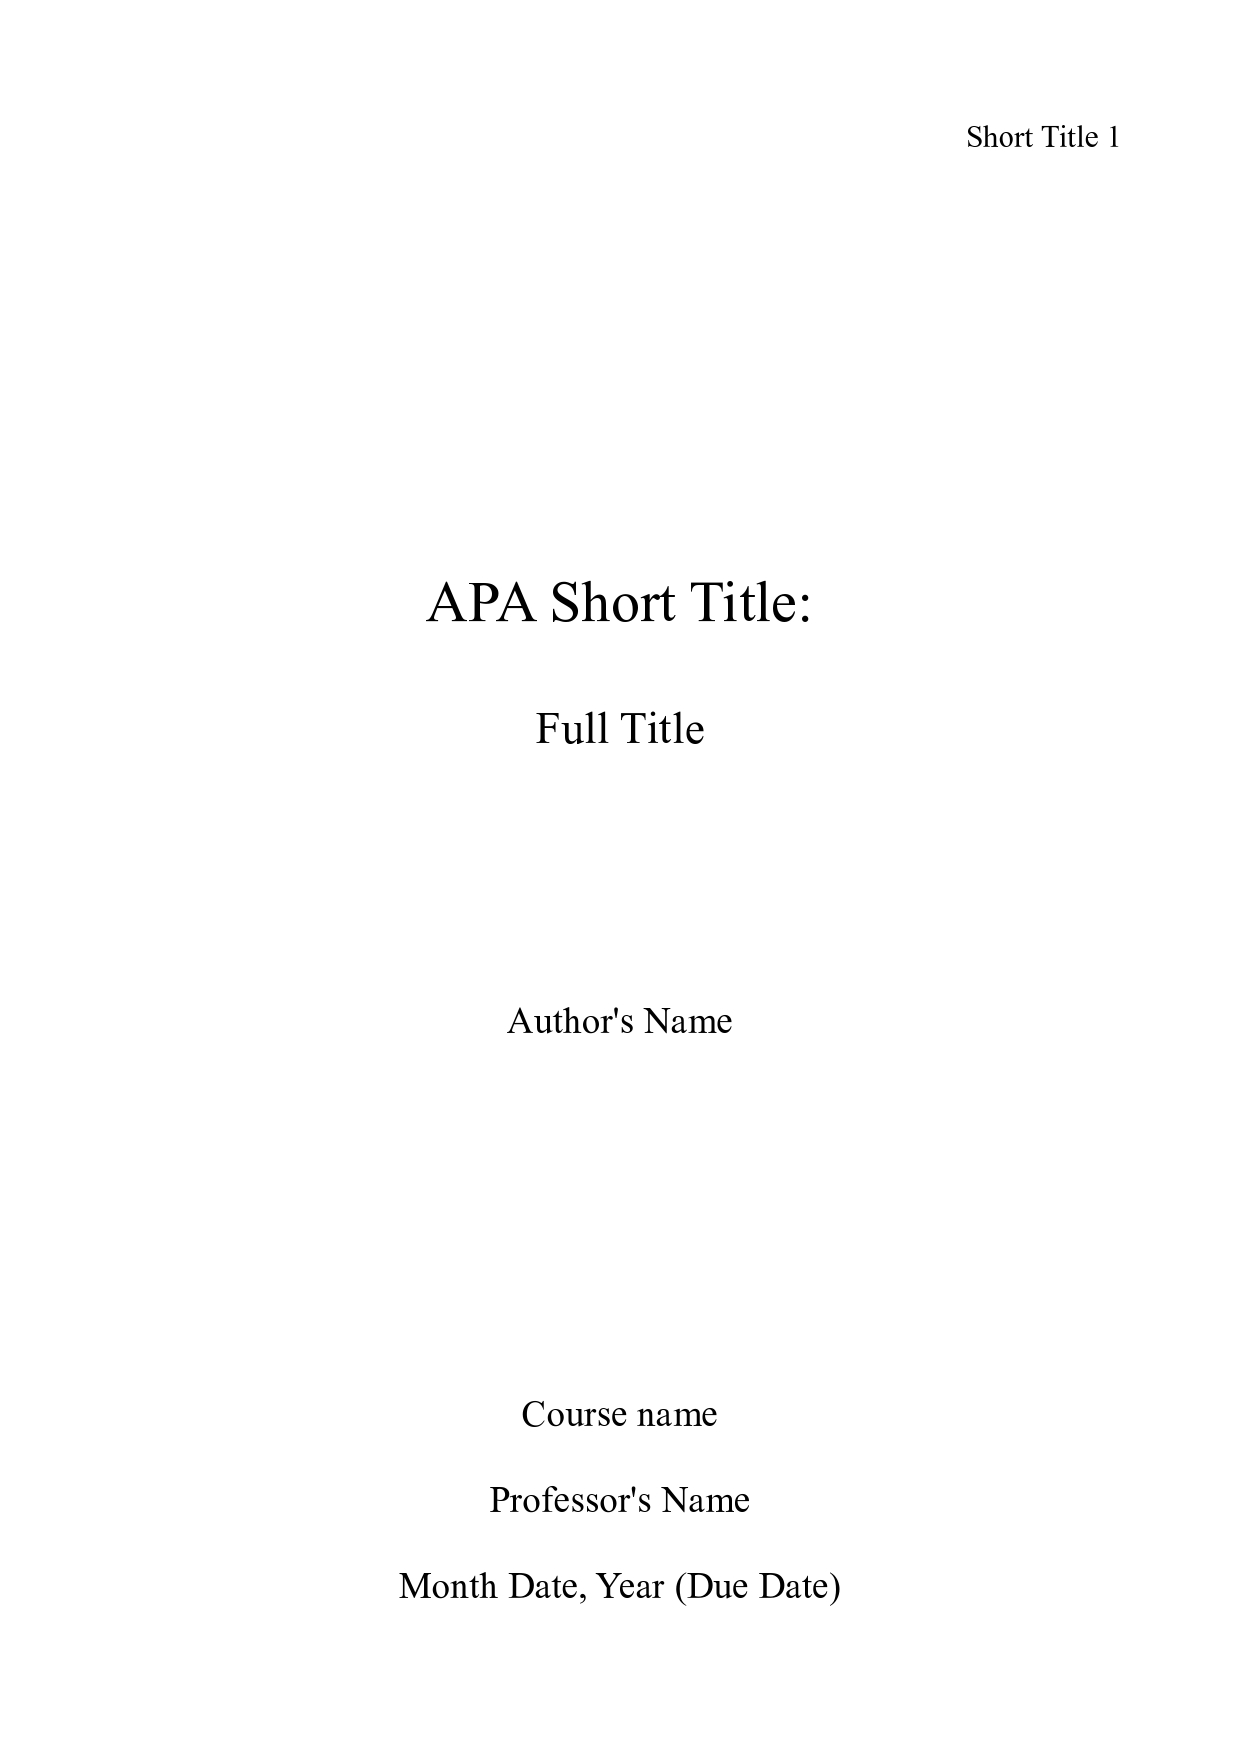 003 Front Page Of Term Paper Example Research Apa Title Unforgettable Sample Full